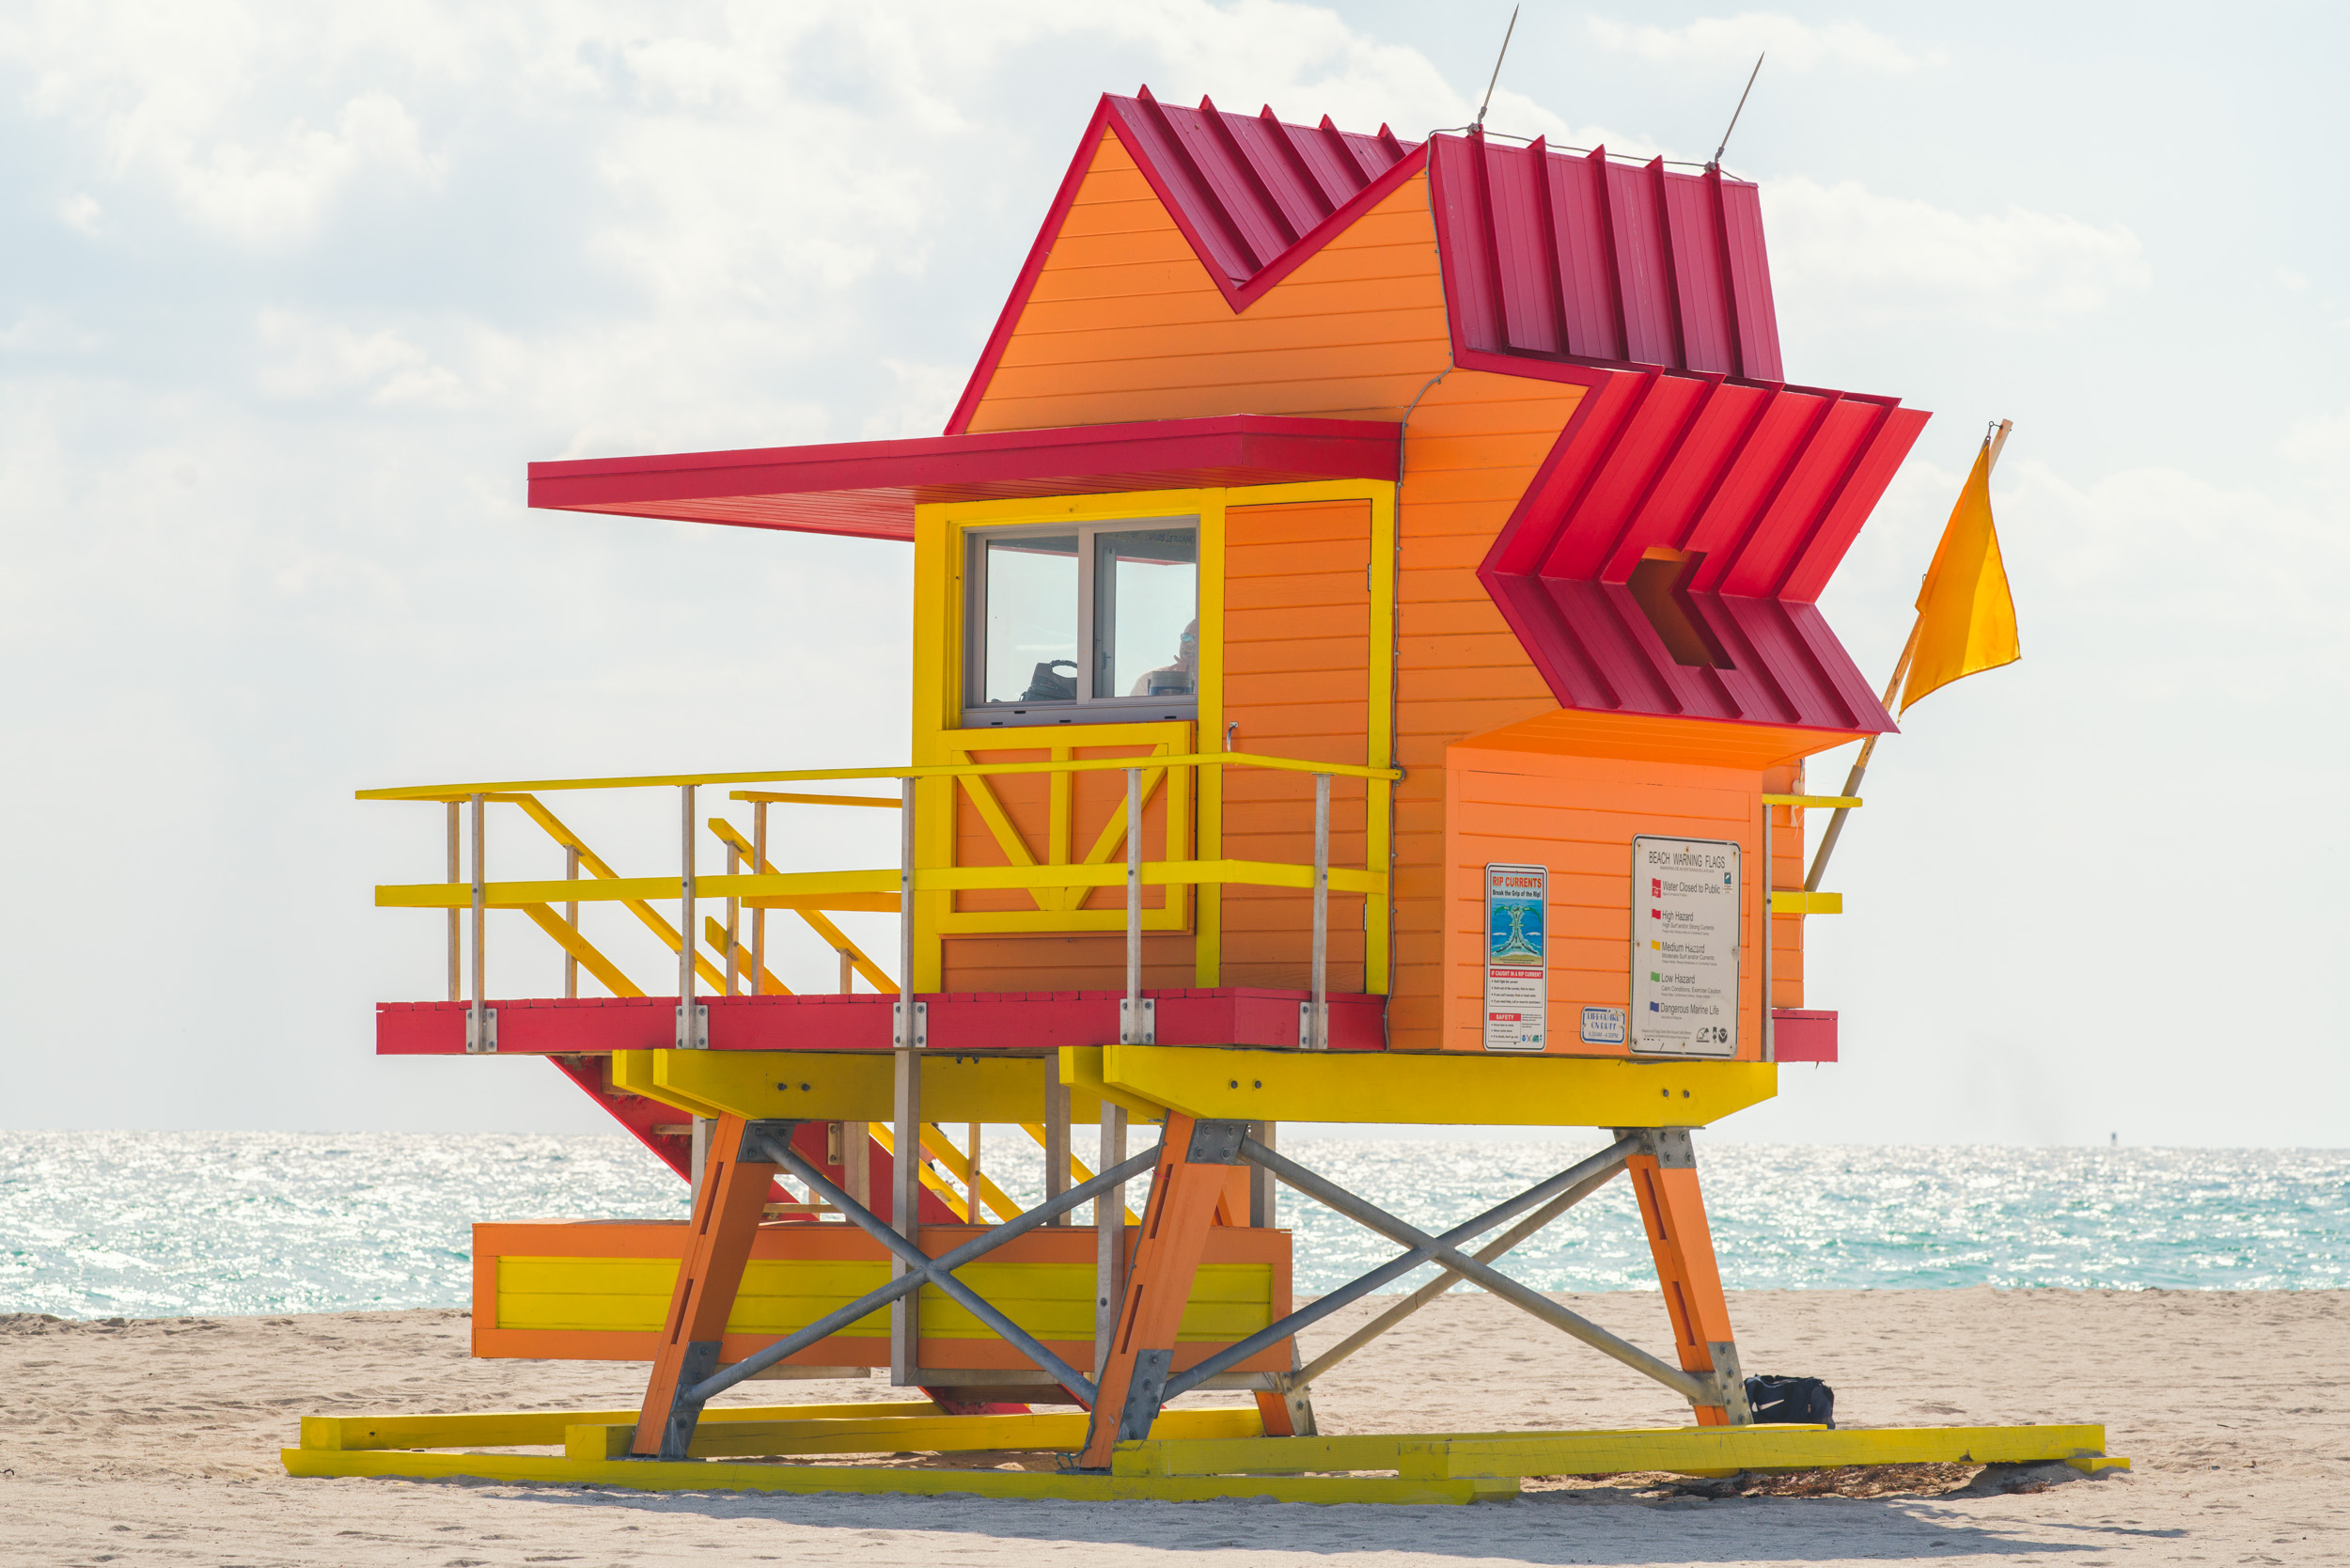 8th Street lifeguard stand - another recent design that playfully adds another sunny element to the beach environment